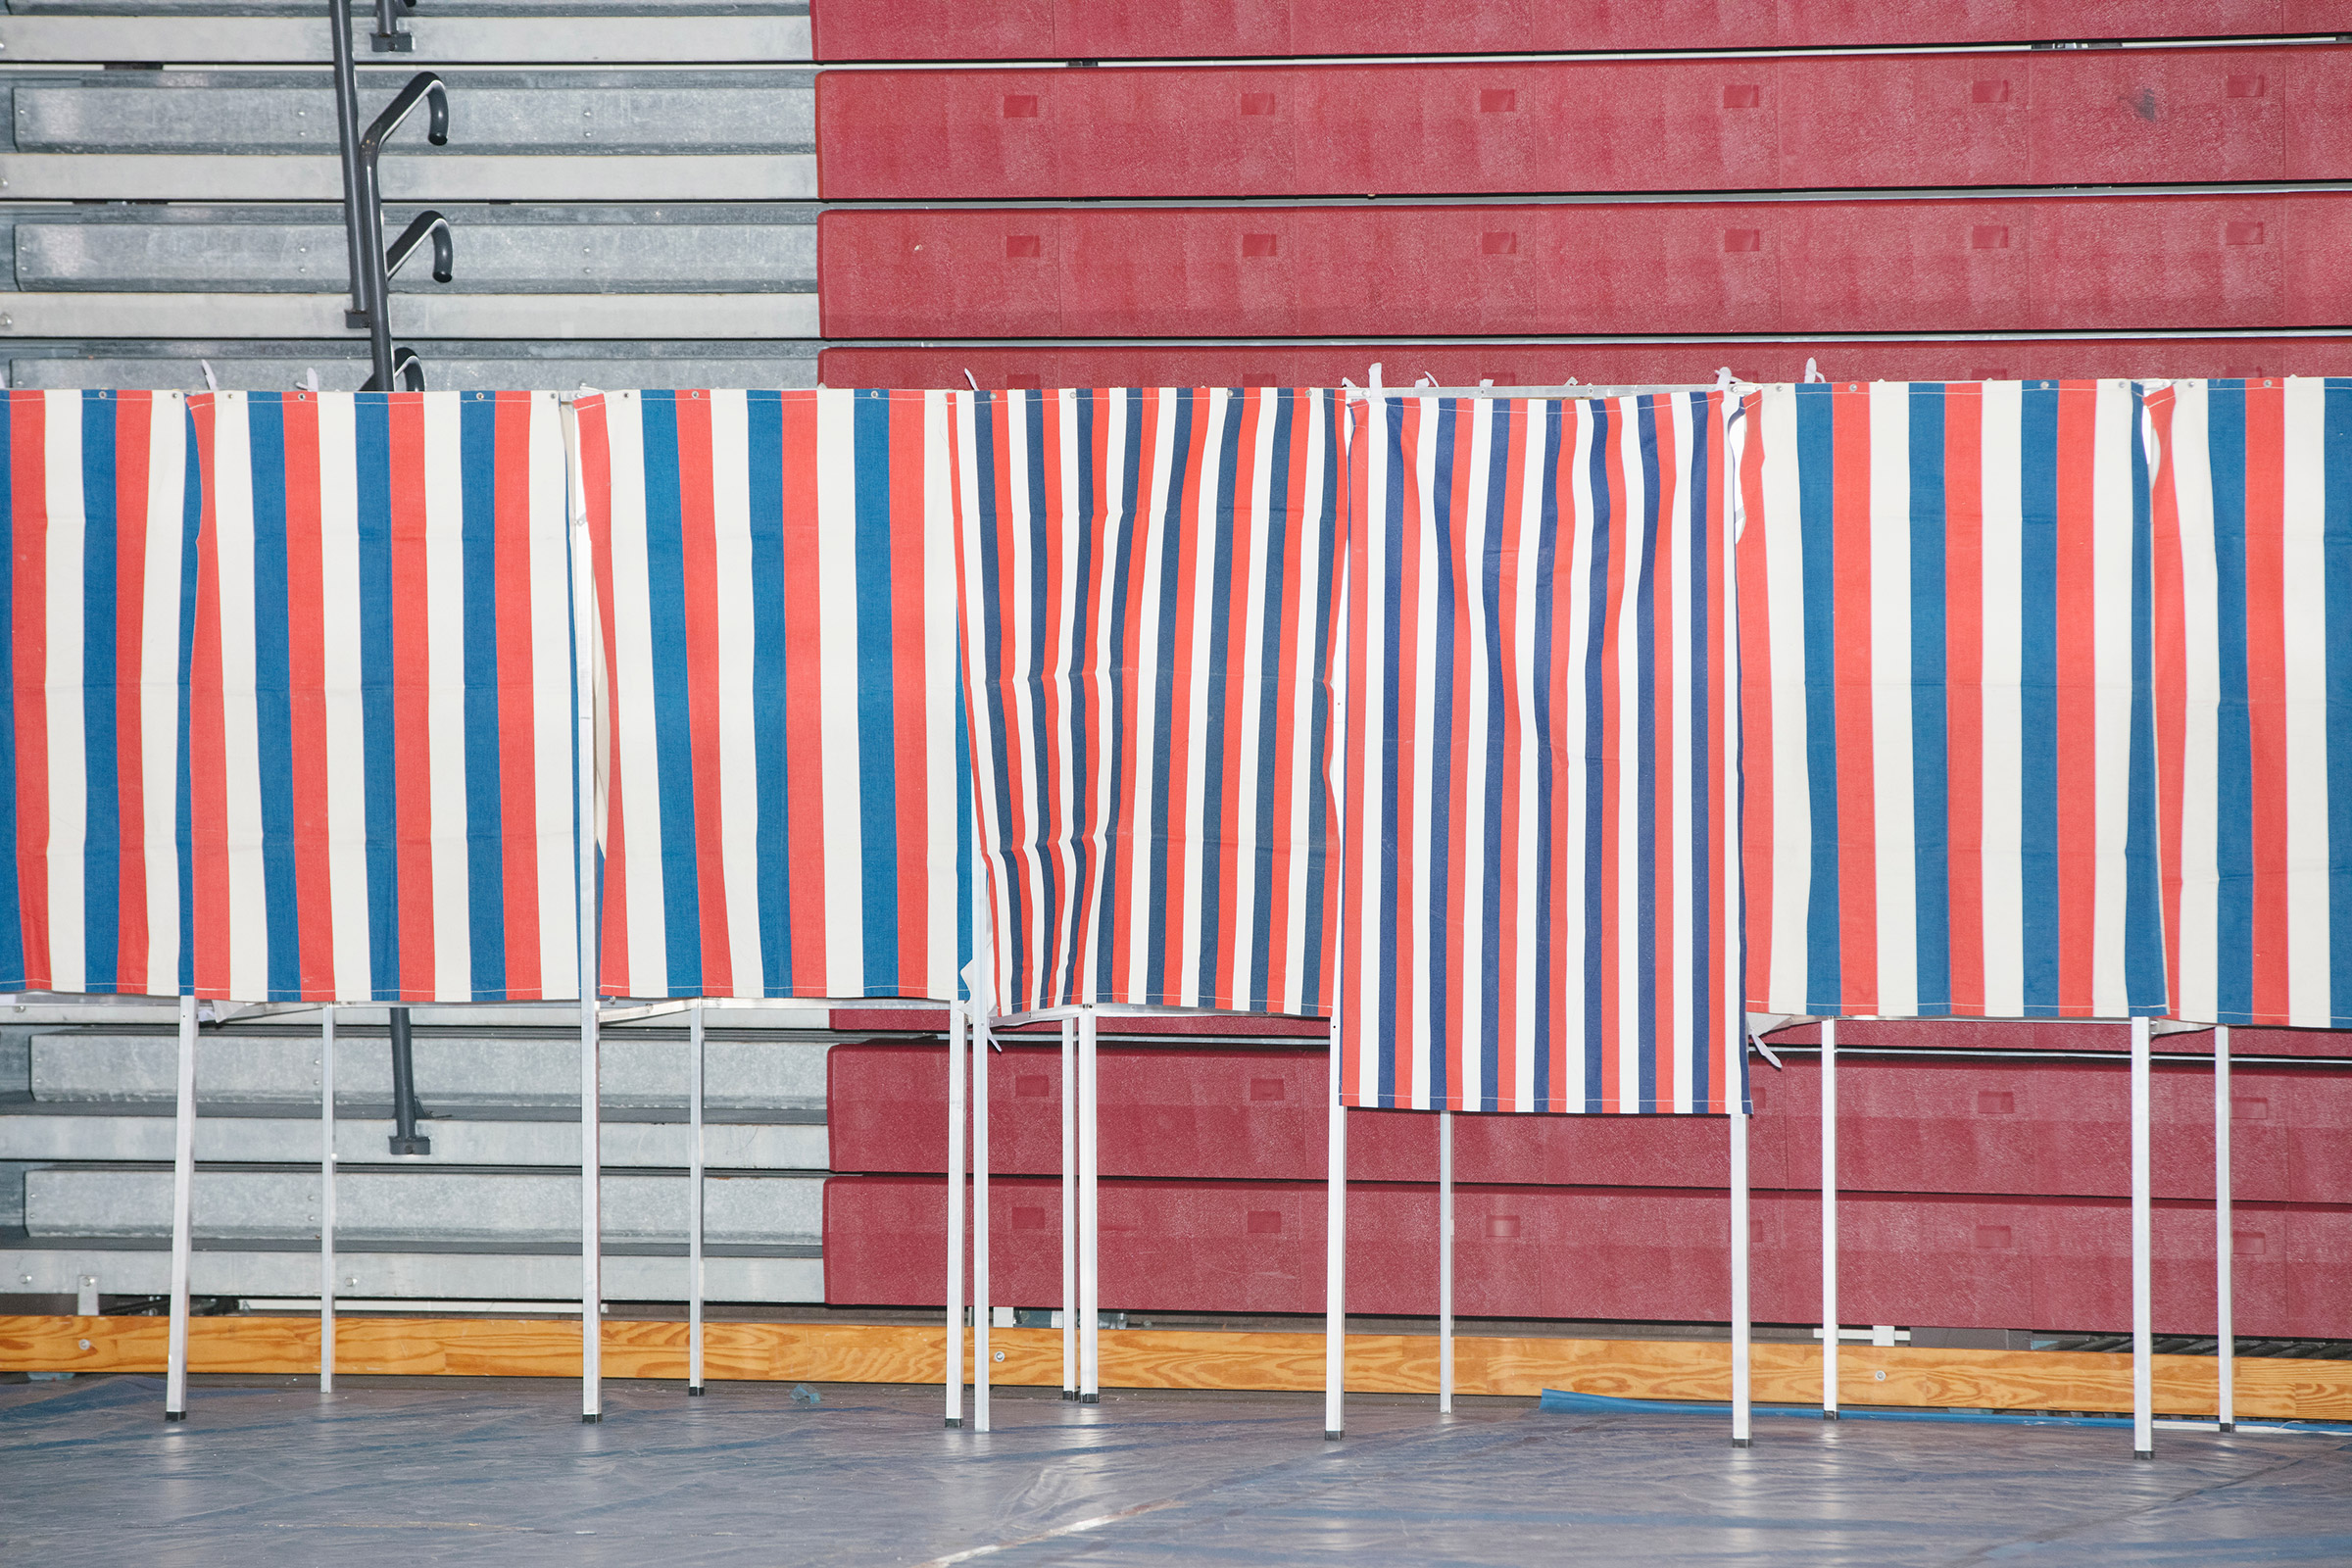 Voting booths stand empty during the New Hampshire Presidential Primary at Bedford High School in Bedford, N.H., on Feb. 11, 2020.